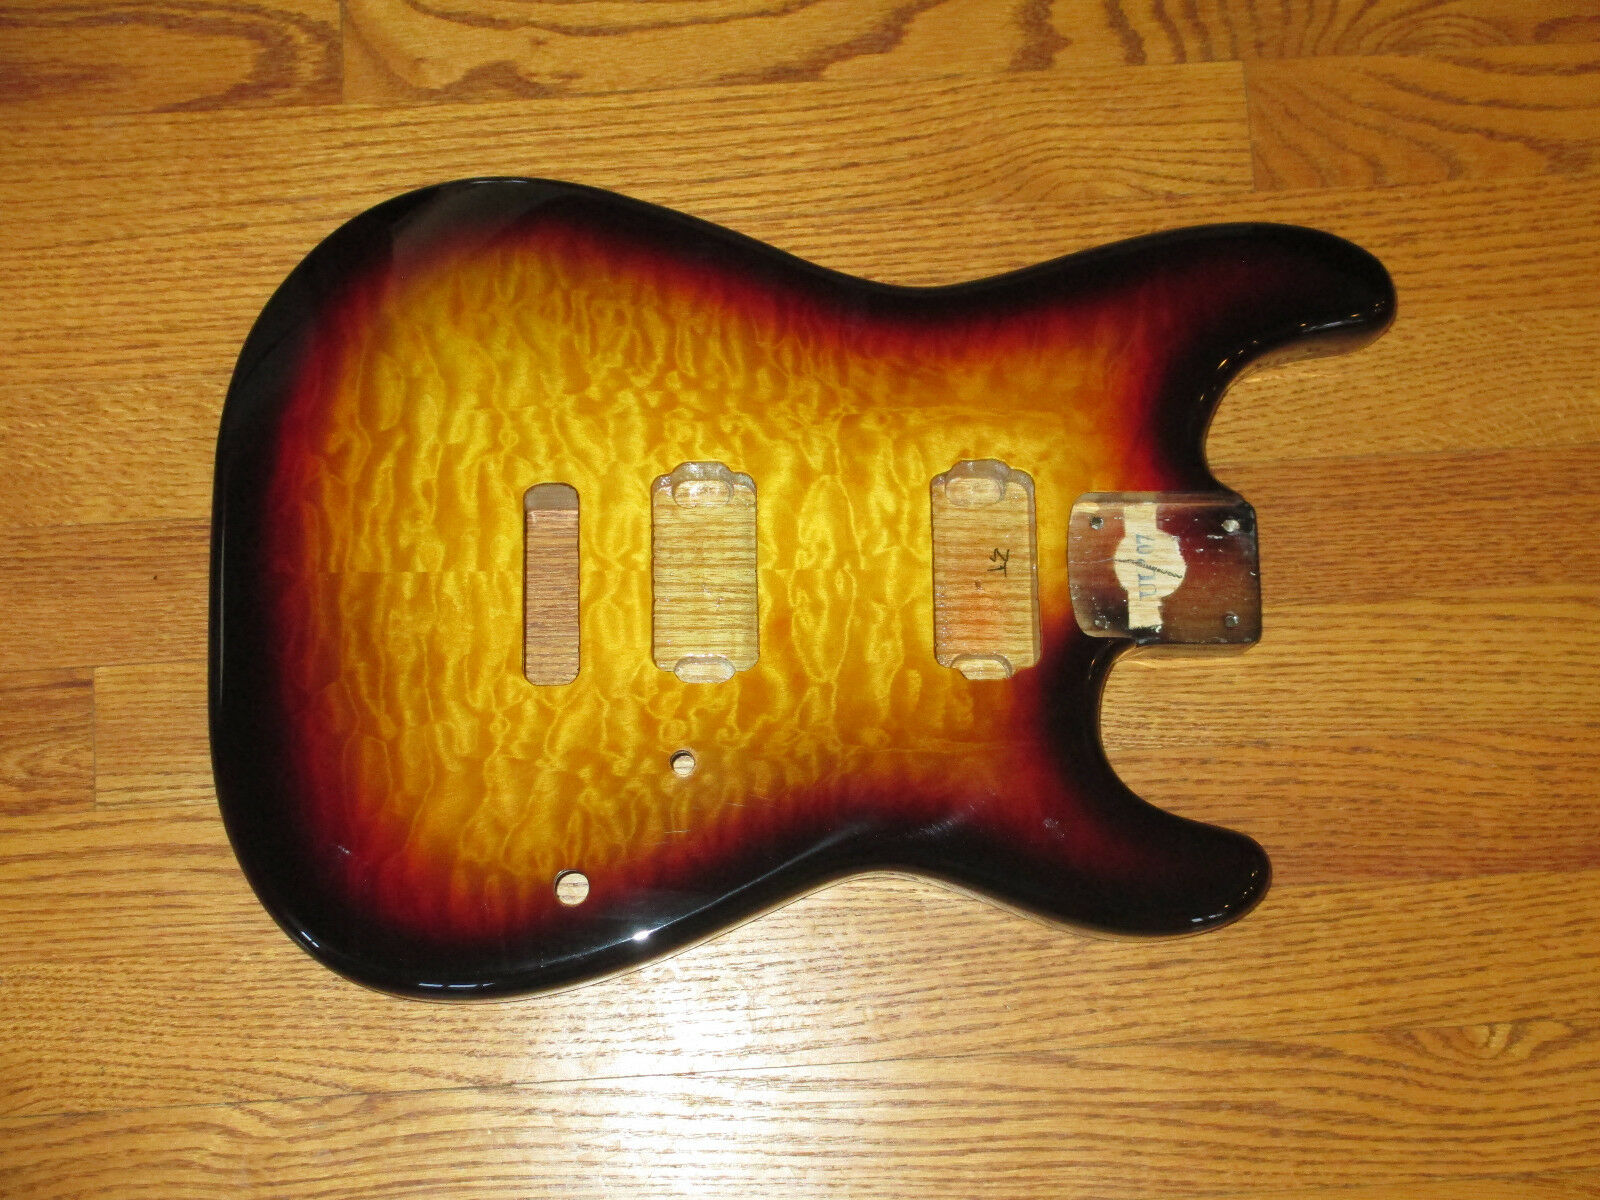 MIGHTY MITE BODY FITS FENDER STRATOCASTER 2 3 16th GUITAR NECK BURST QUILT TOP